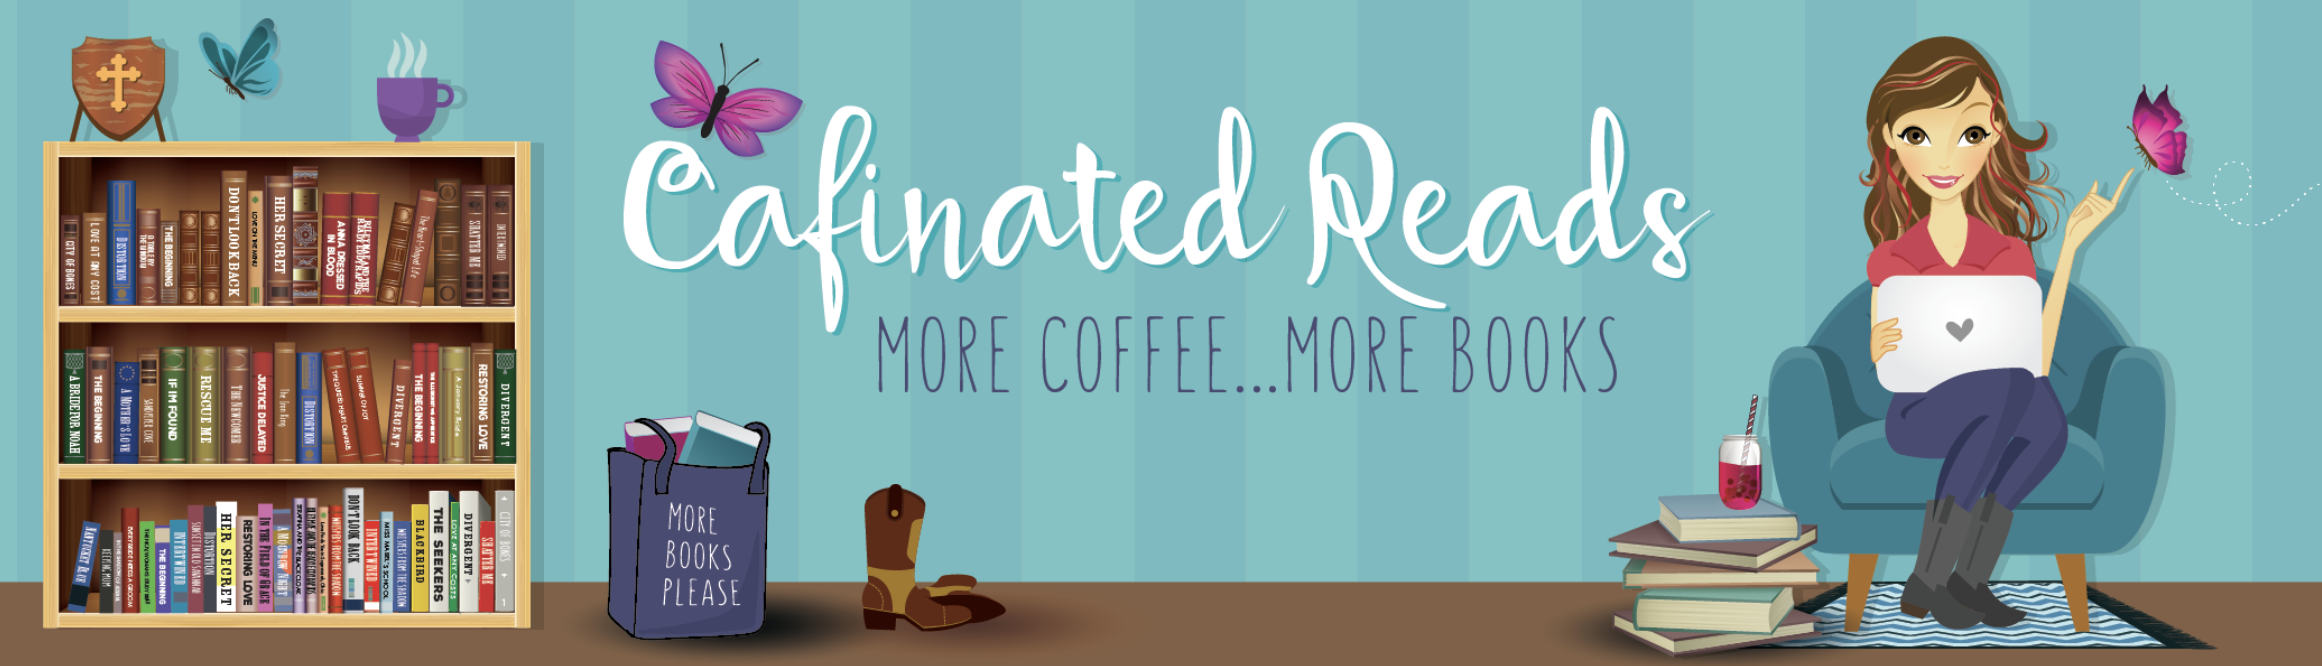 Cafinated Reads